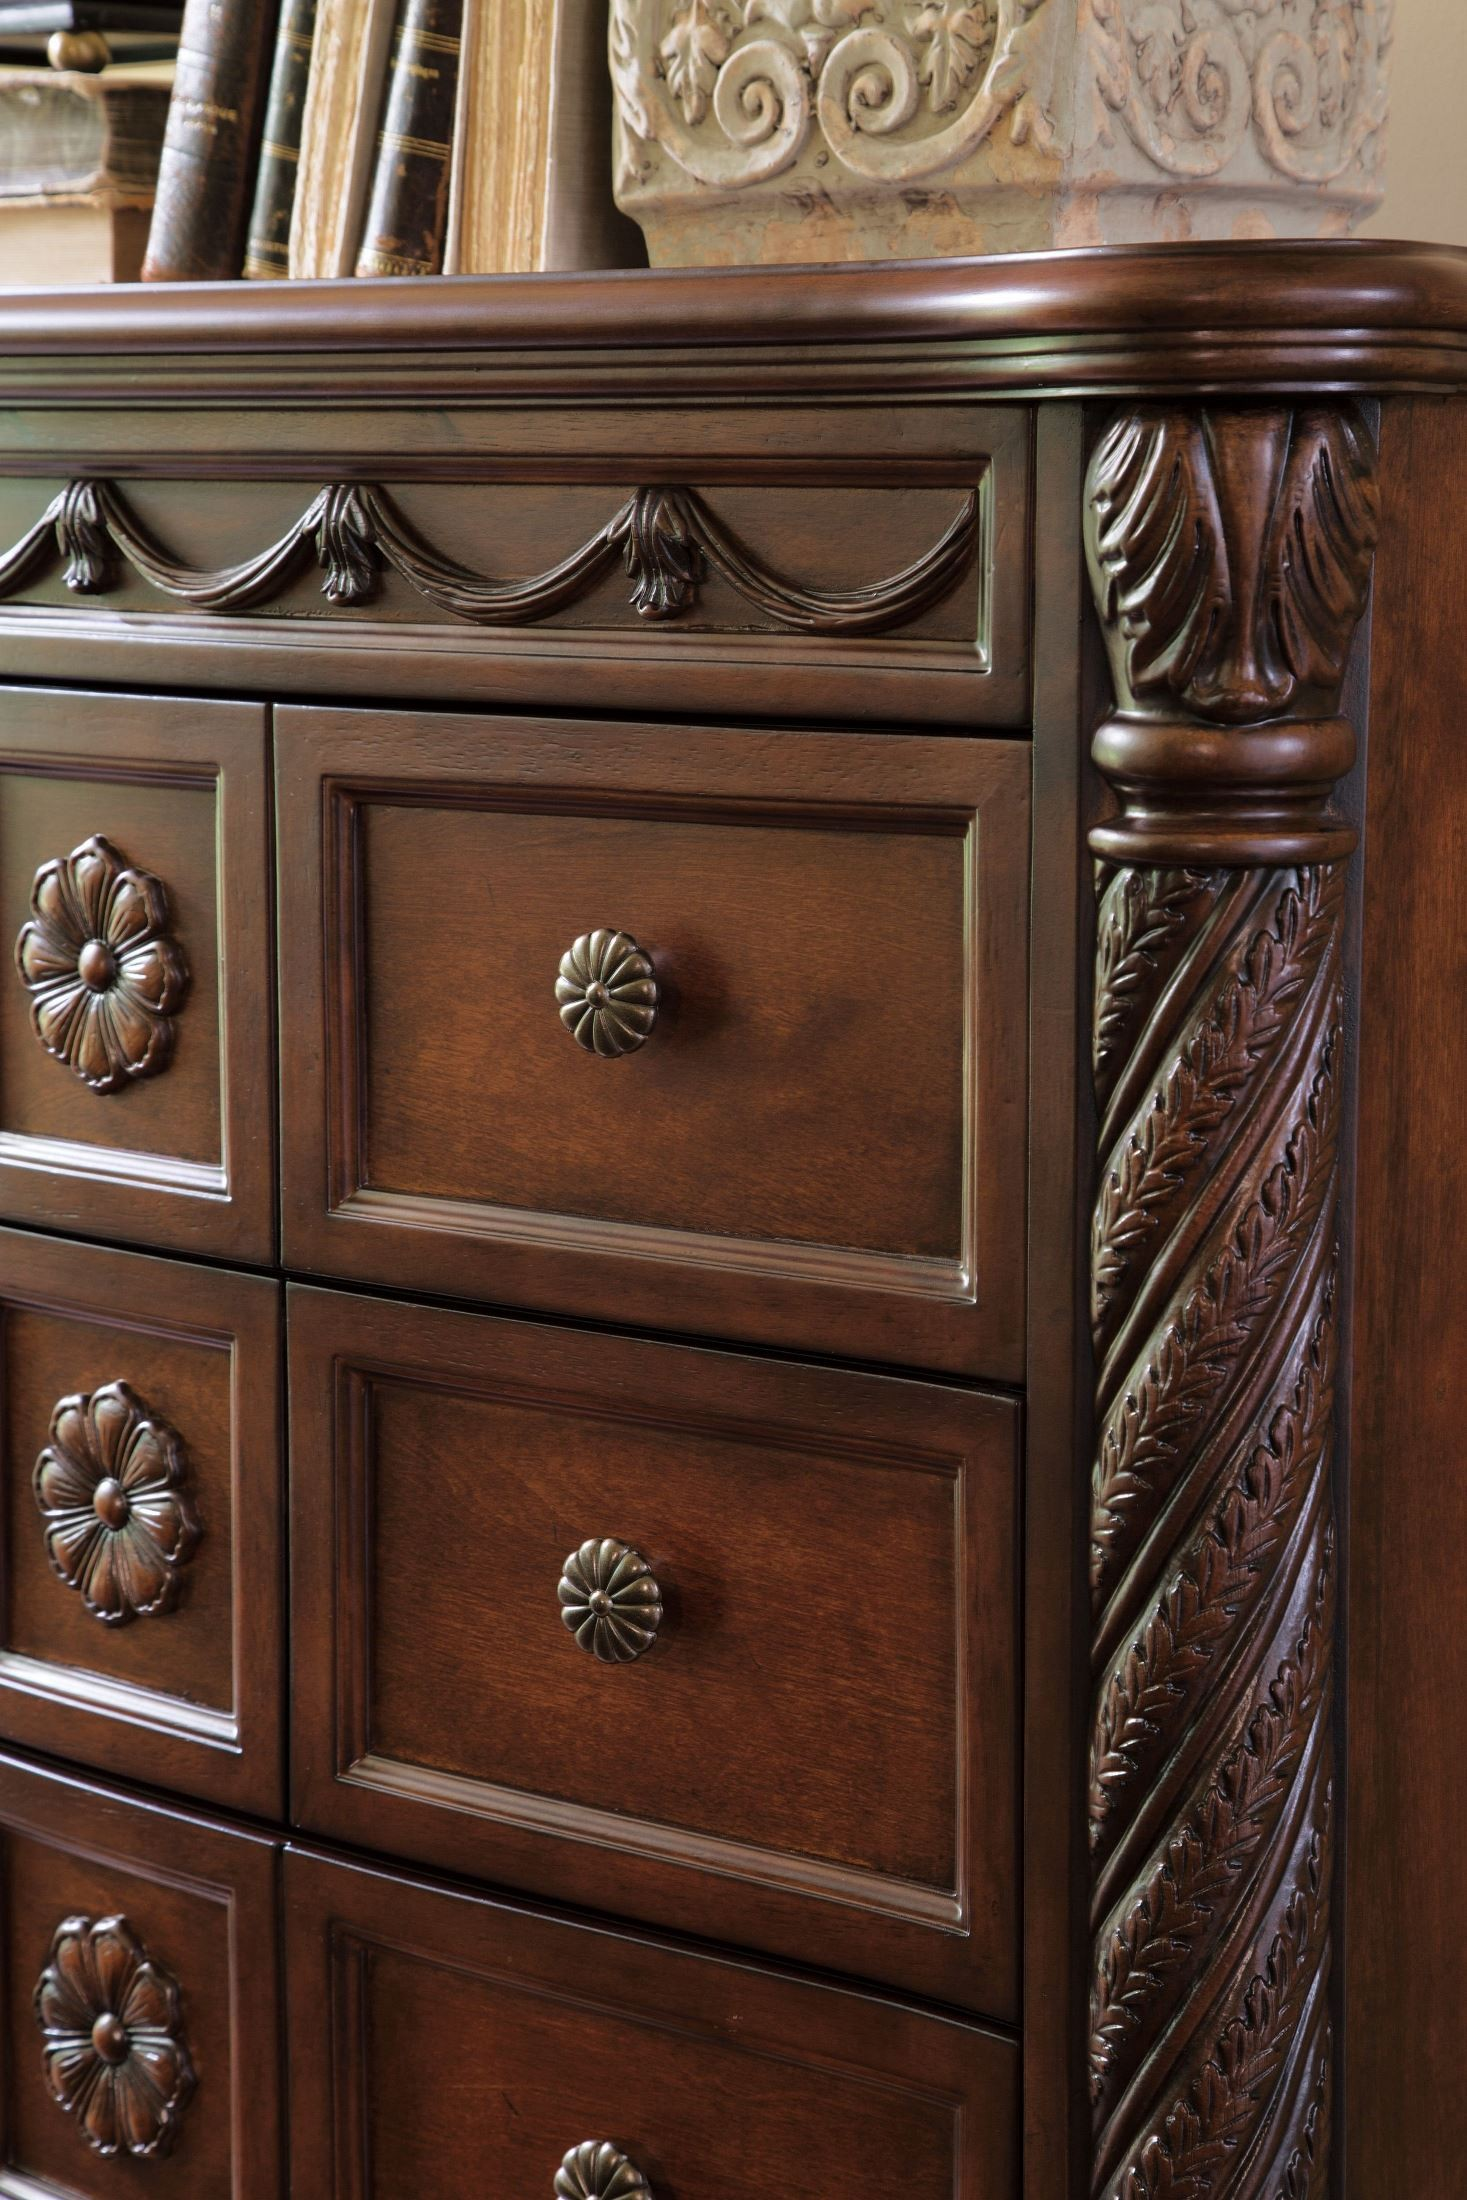 North shore chest from ashley b553 46 coleman furniture - North shore sleigh bedroom set sale ...